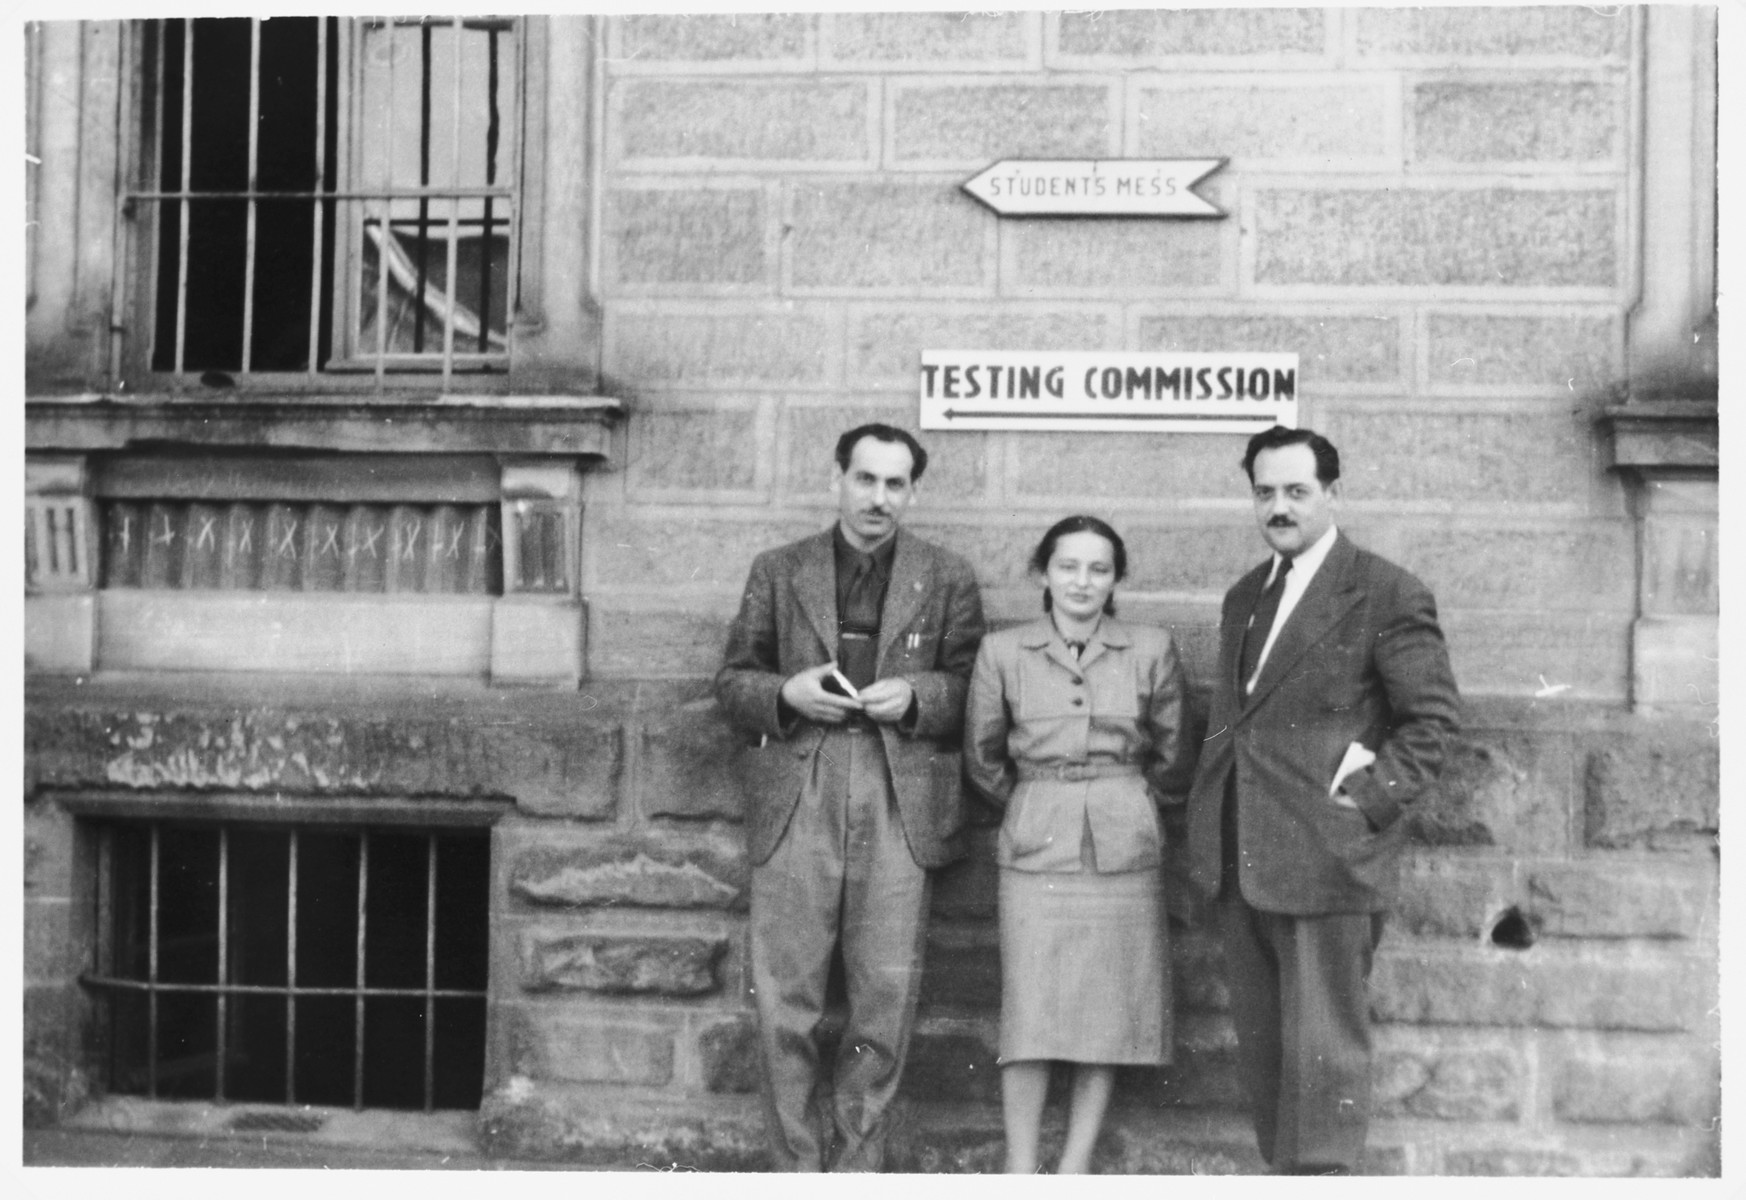 Canadian delegates stand outside the testing commission where prospective immigrants into Canada will be trade tested.  From left to right are David Siegel, the liaison between Canadian immigration and the Canadian Jewish Congress, Bella Meiskin of the Jewish Labor Committee and Lucien St. Cyr from the Canadian Labor Department.